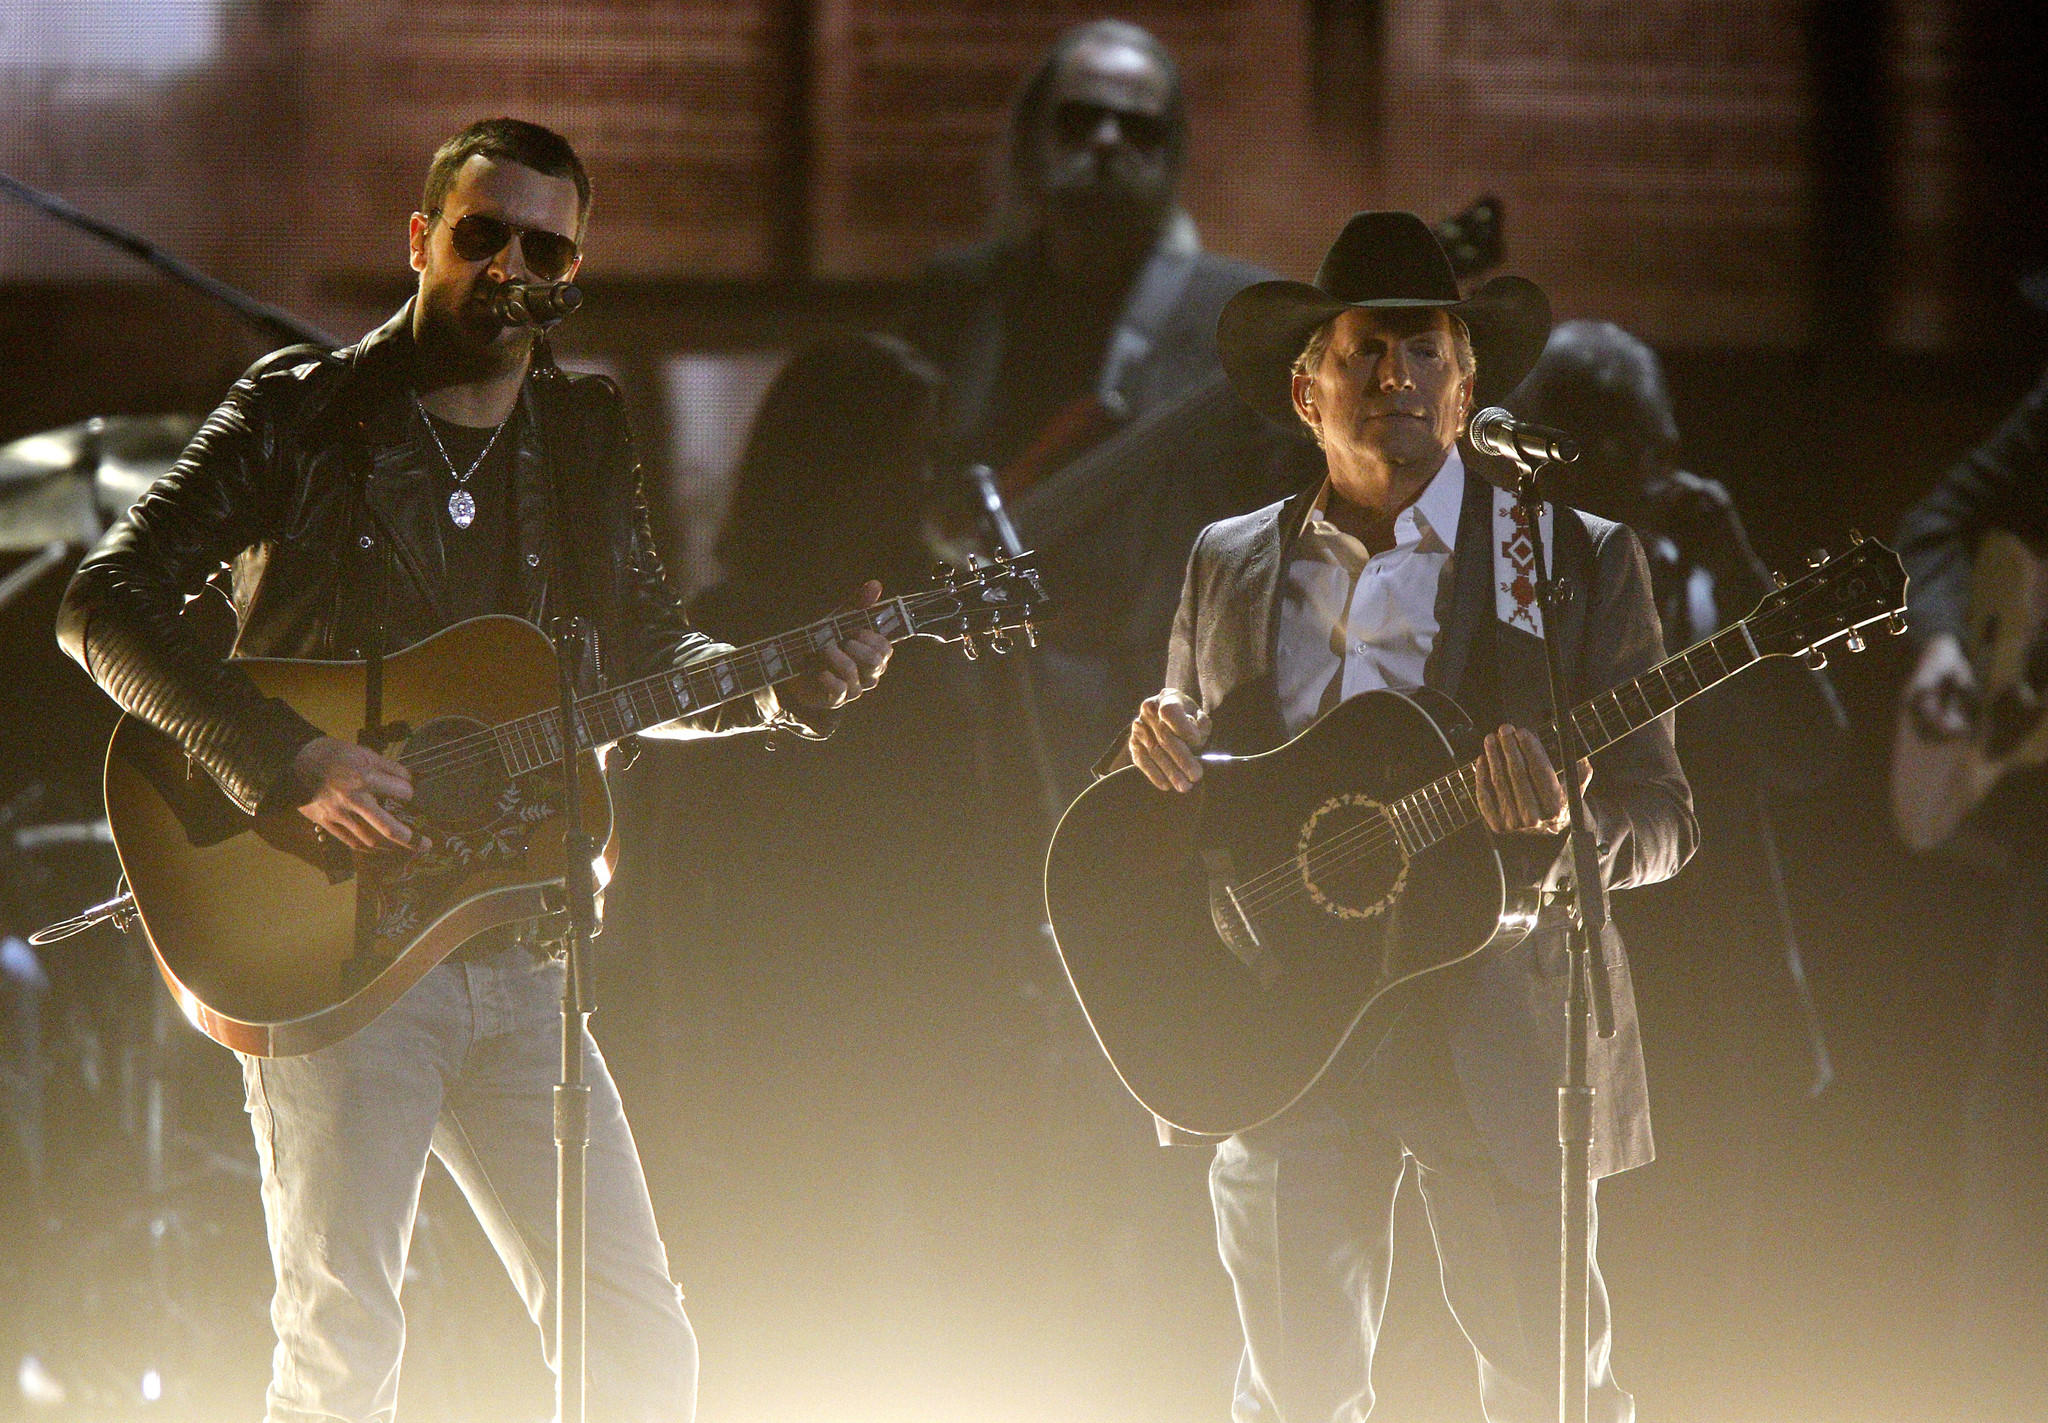 George Strait, right, is scheduled to perform live on the Hand in Hand benefit Tuesday night. The fundraiser has been expanded to include devastation from Hurricane Irma. (Wade Payne / Invision/Associated Press)